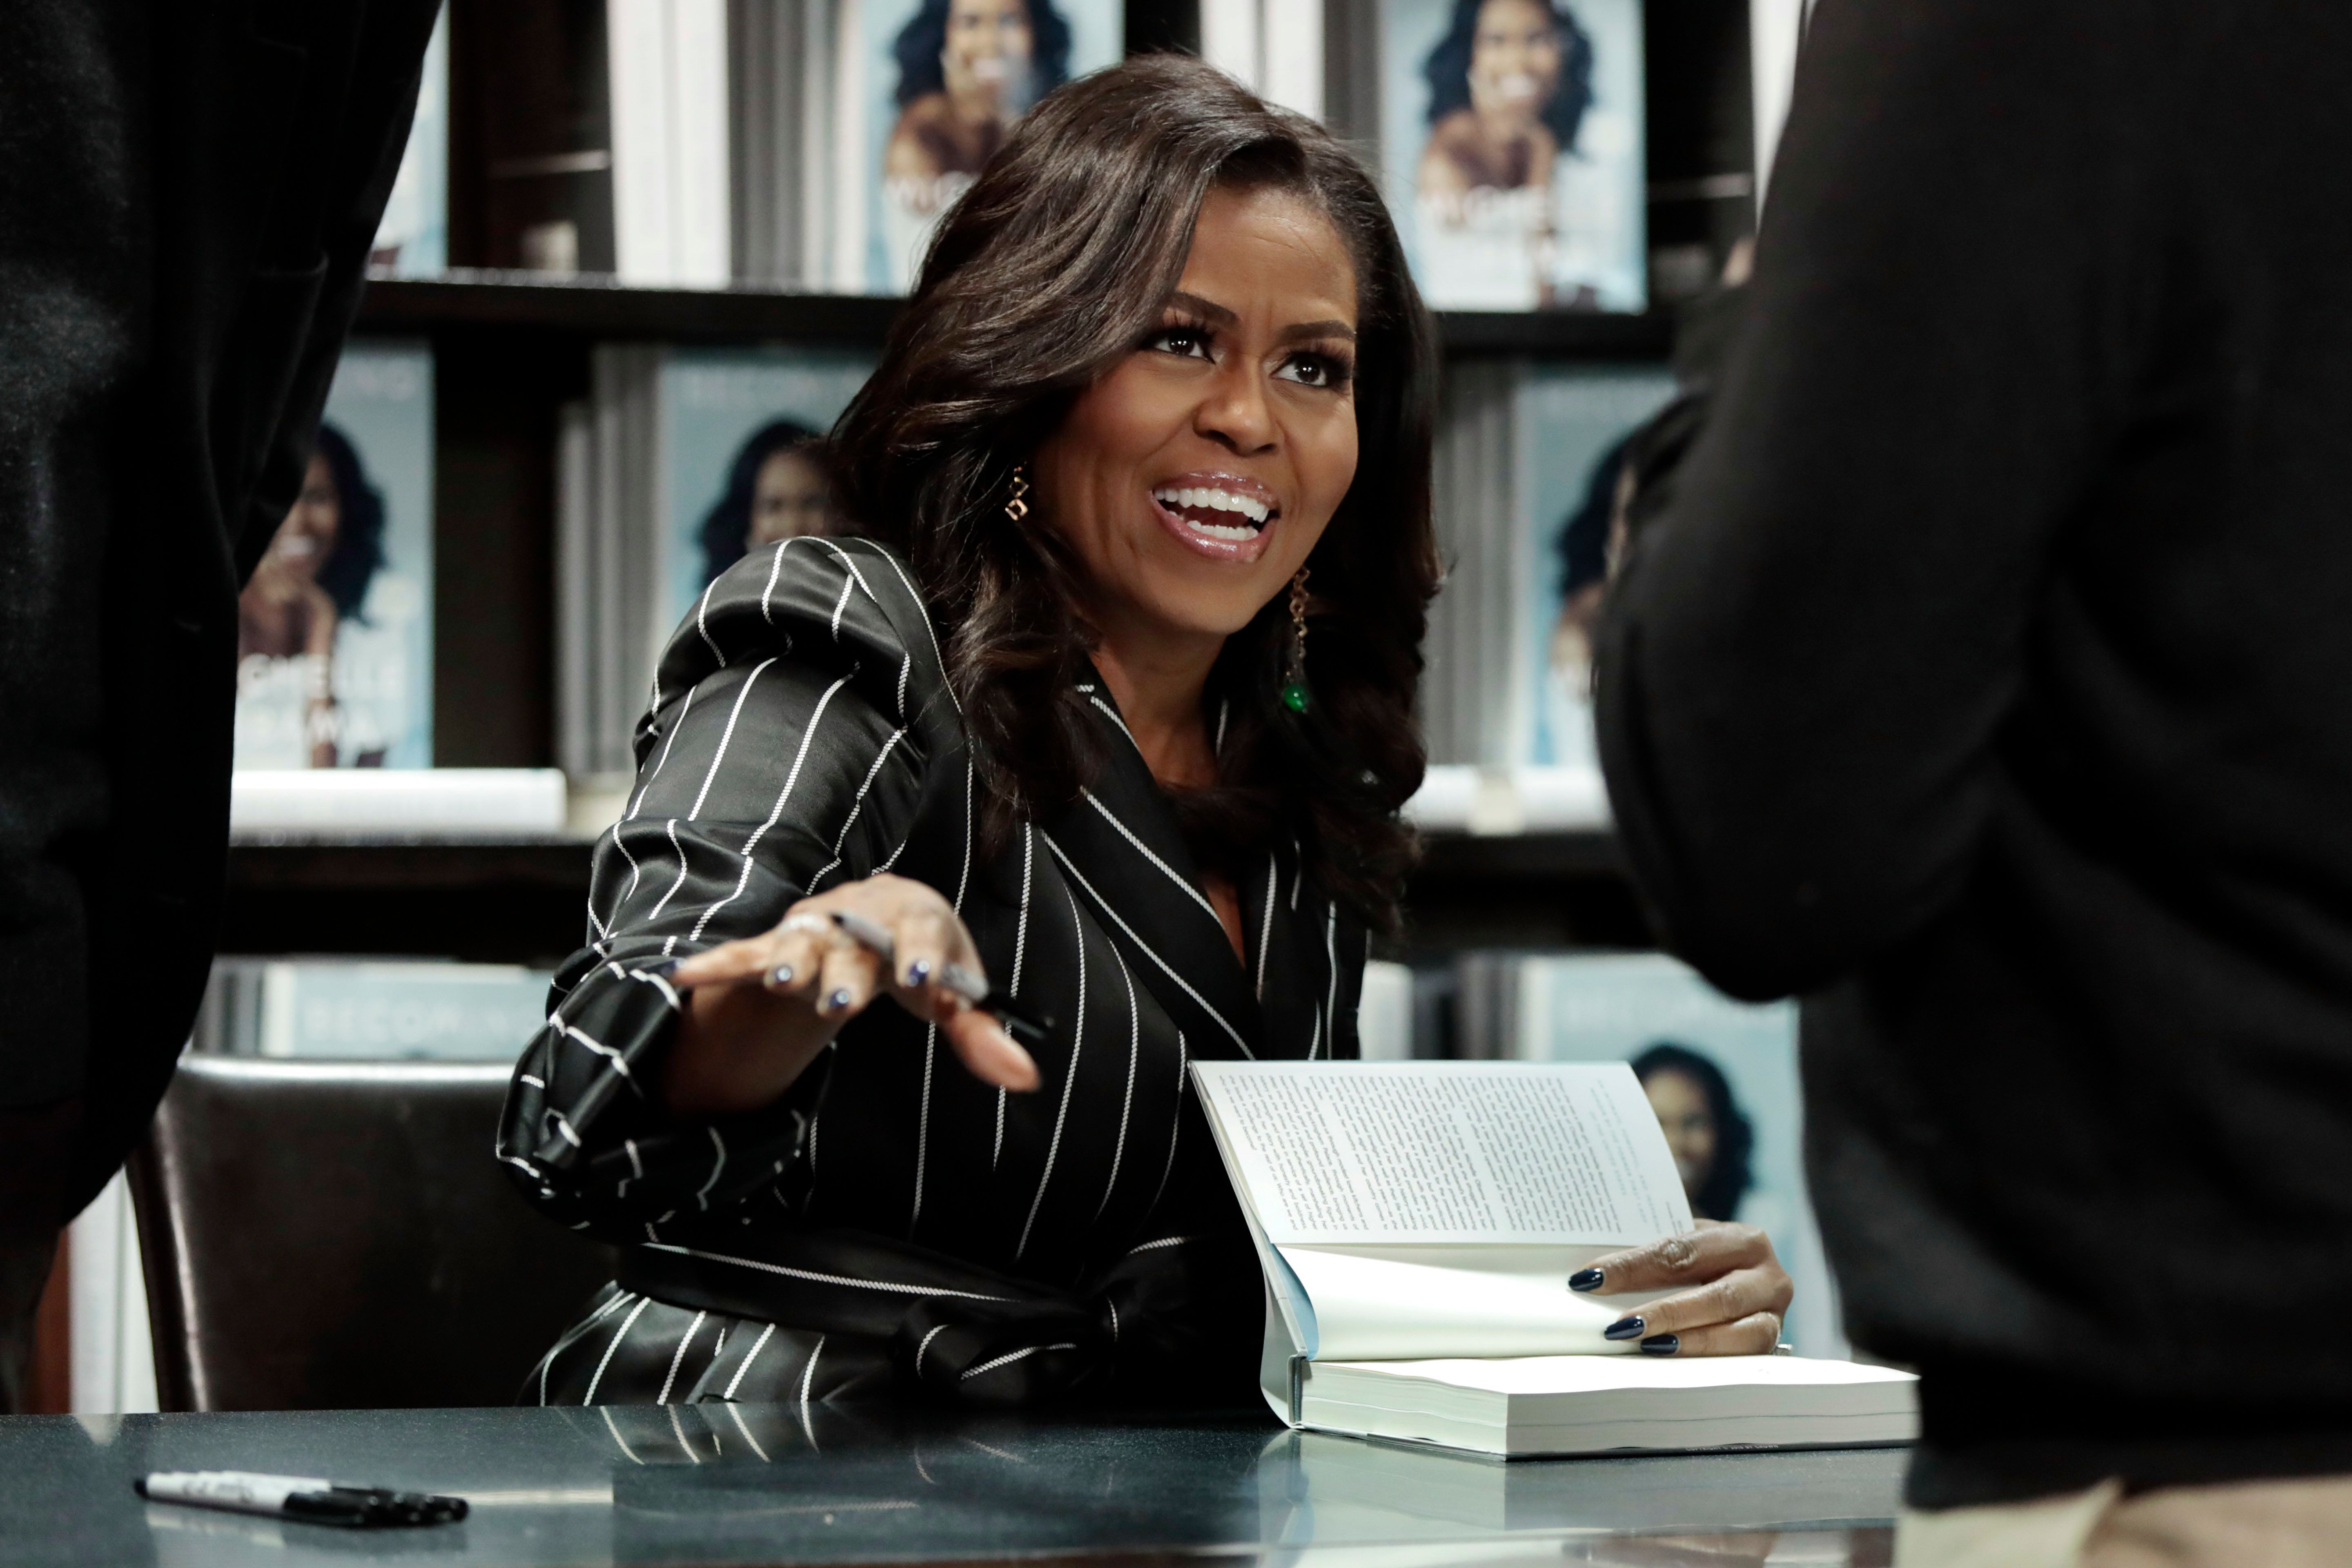 """Former First Lady Michelle Obama signs books during an appearance for her book, """"Becoming,"""" in New York, Friday, Nov. 30, 2018. Combined hardcover, e-book and audio sales in the U.S. and Canada topped 2 million copies in the first 15 days, Crown Publishing announced Friday. (AP Photo/Richard Drew)"""